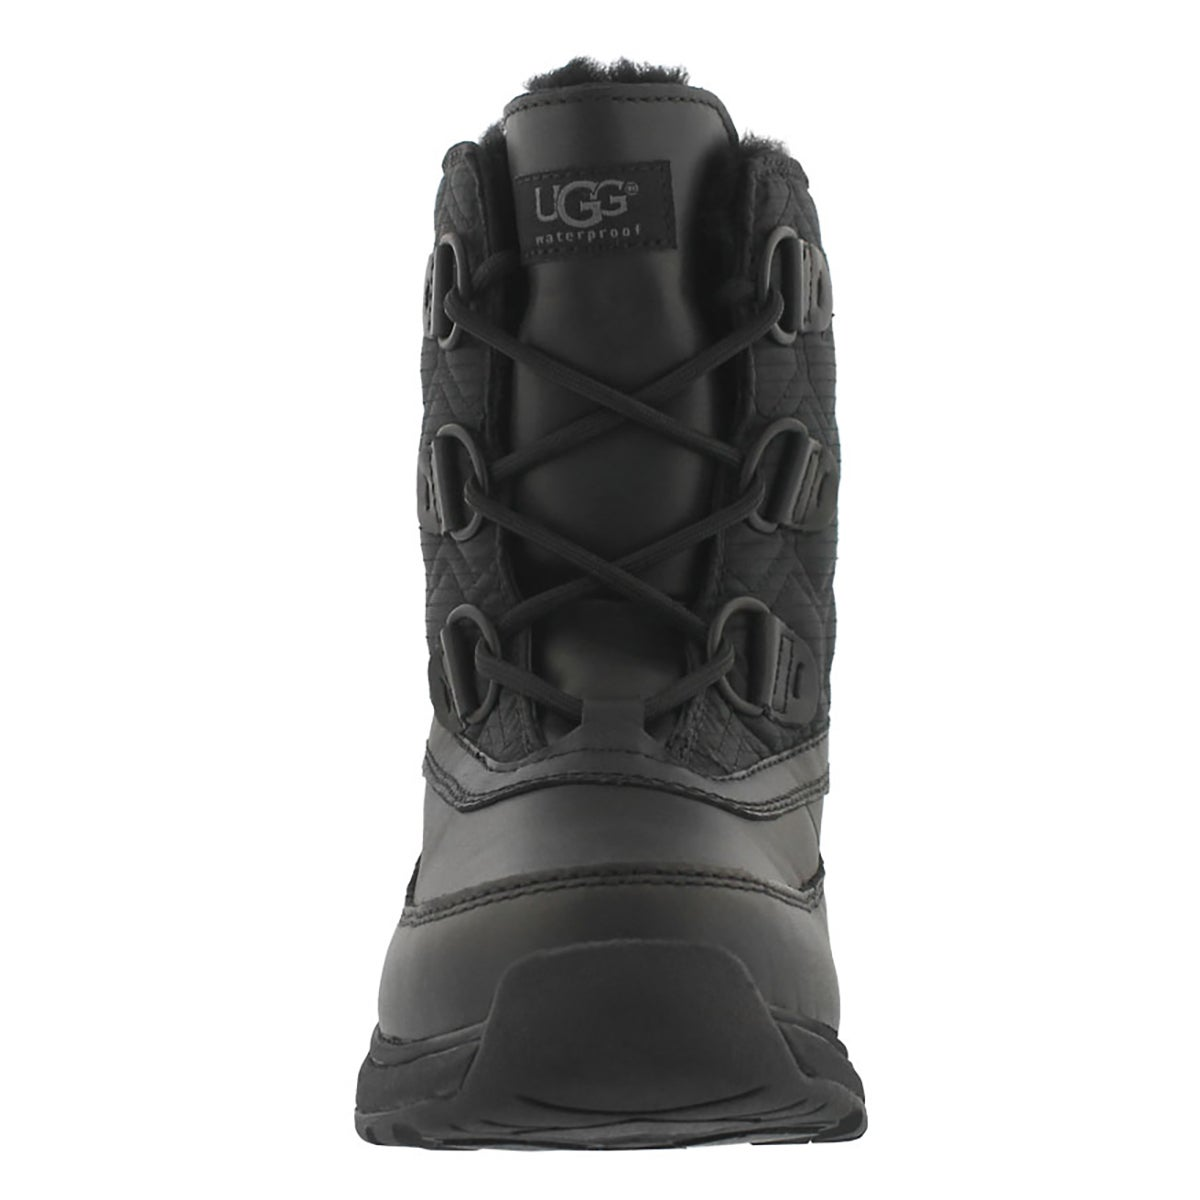 Lds Lachlan black wtpf winter boot